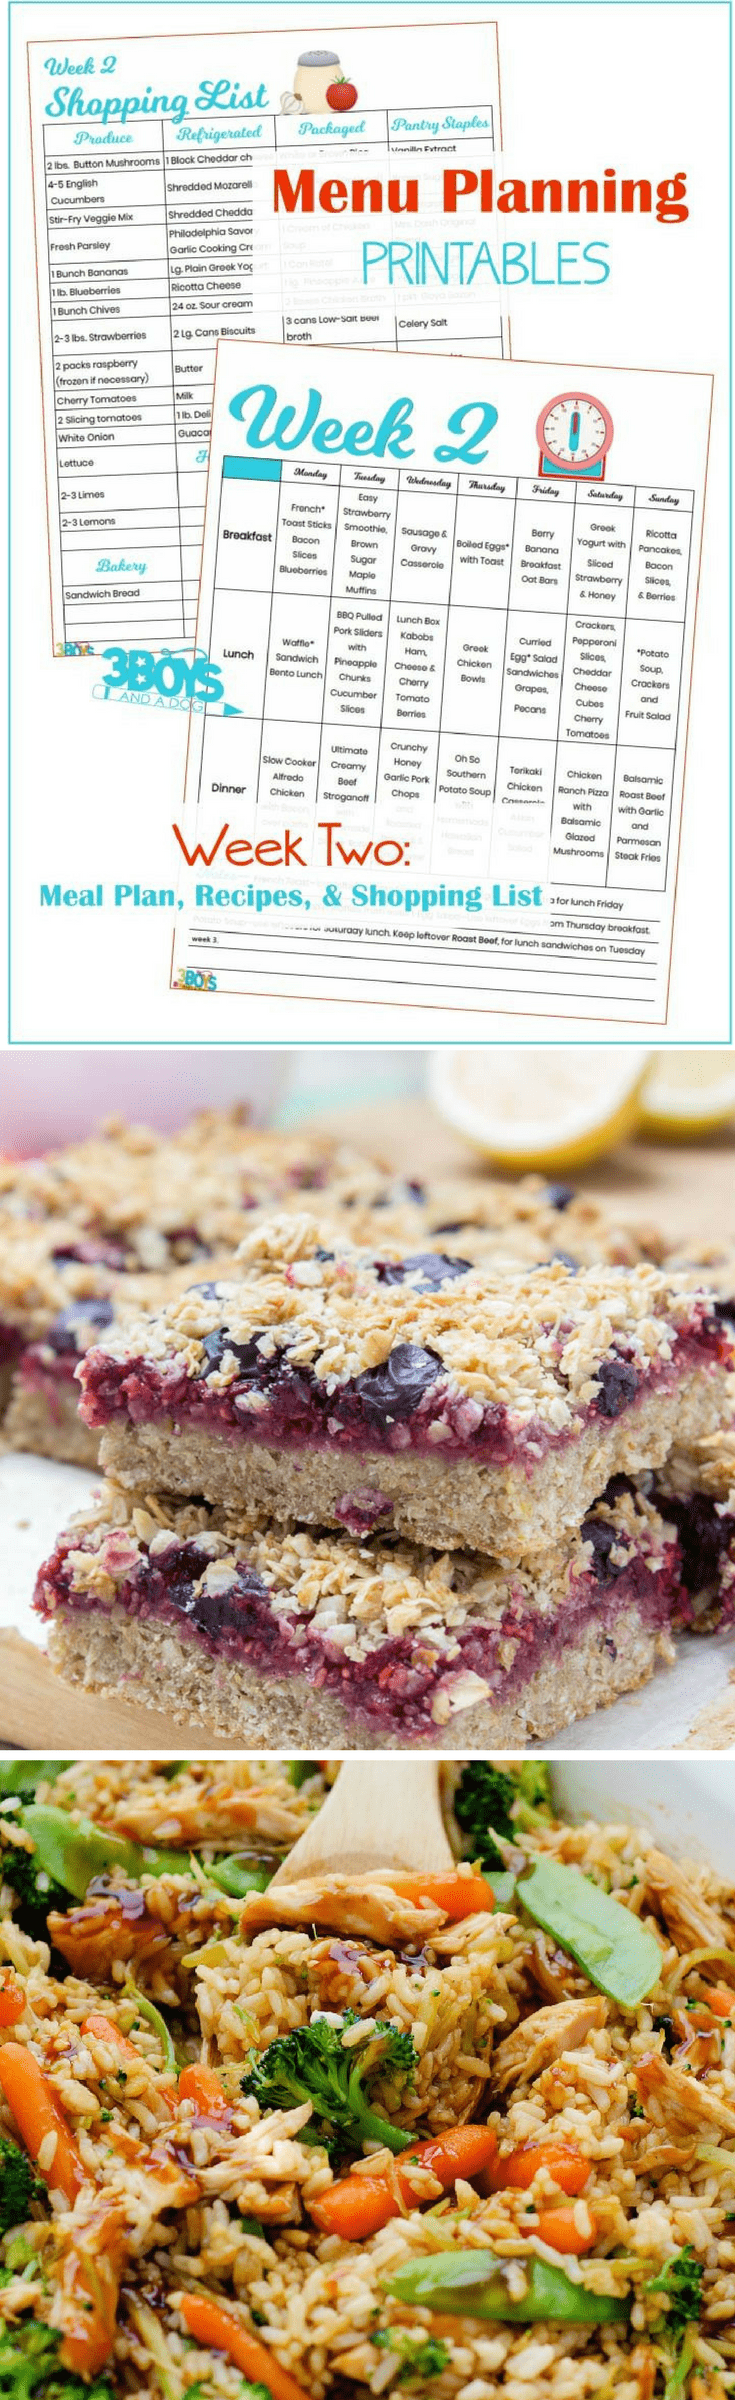 The complete menu plan for the second week of the year.  You can find links to recipes, a printable shopping list, and a printable menu planner.